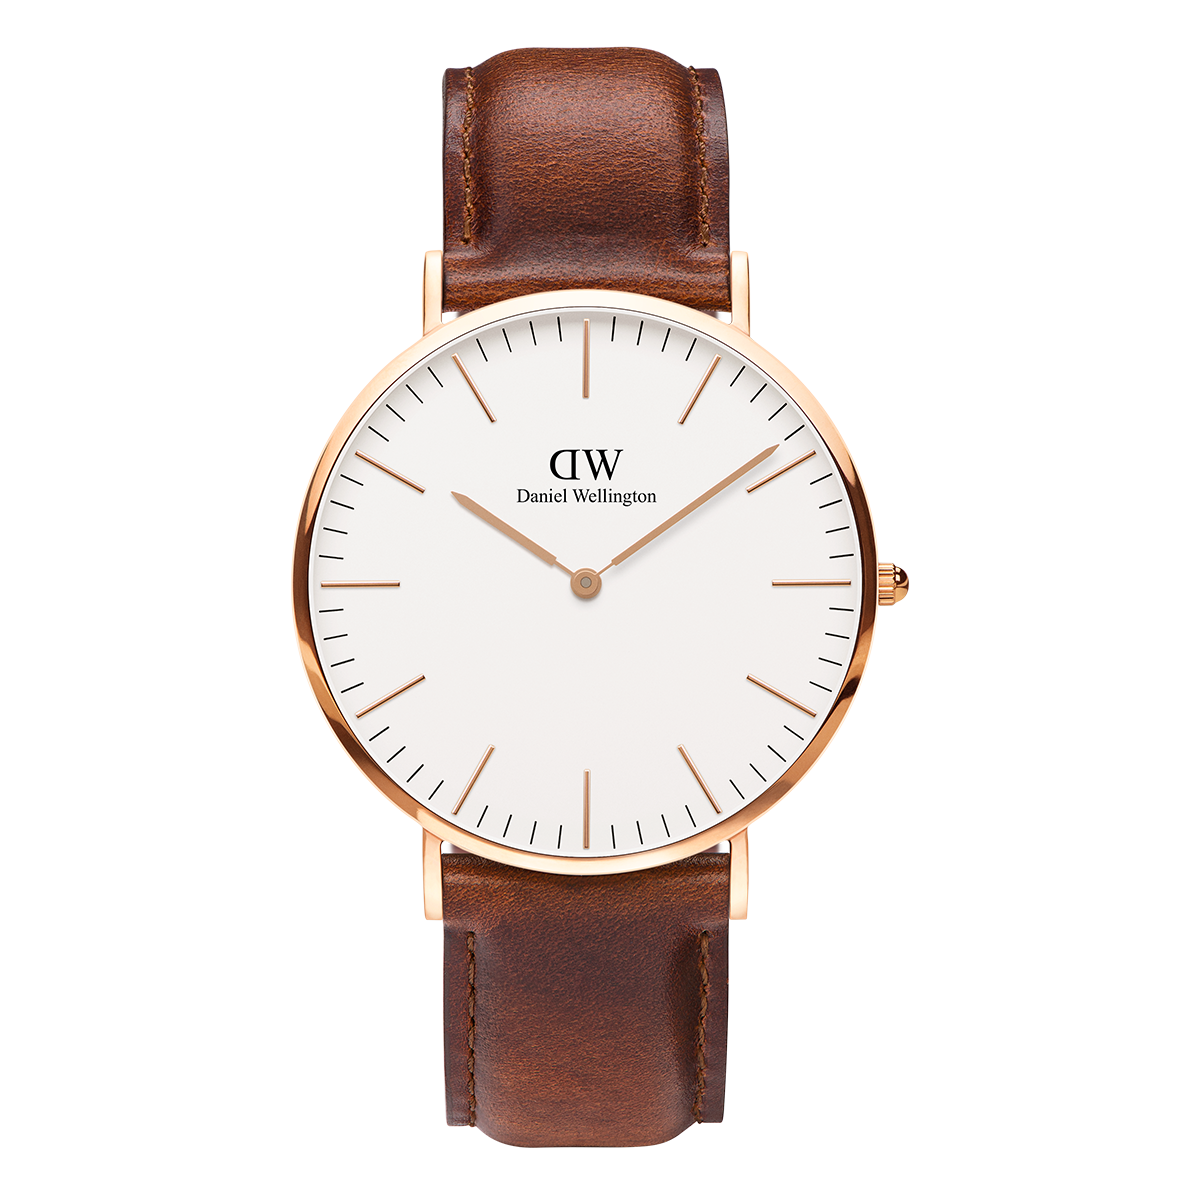 Image result for daniel wellington watches for men